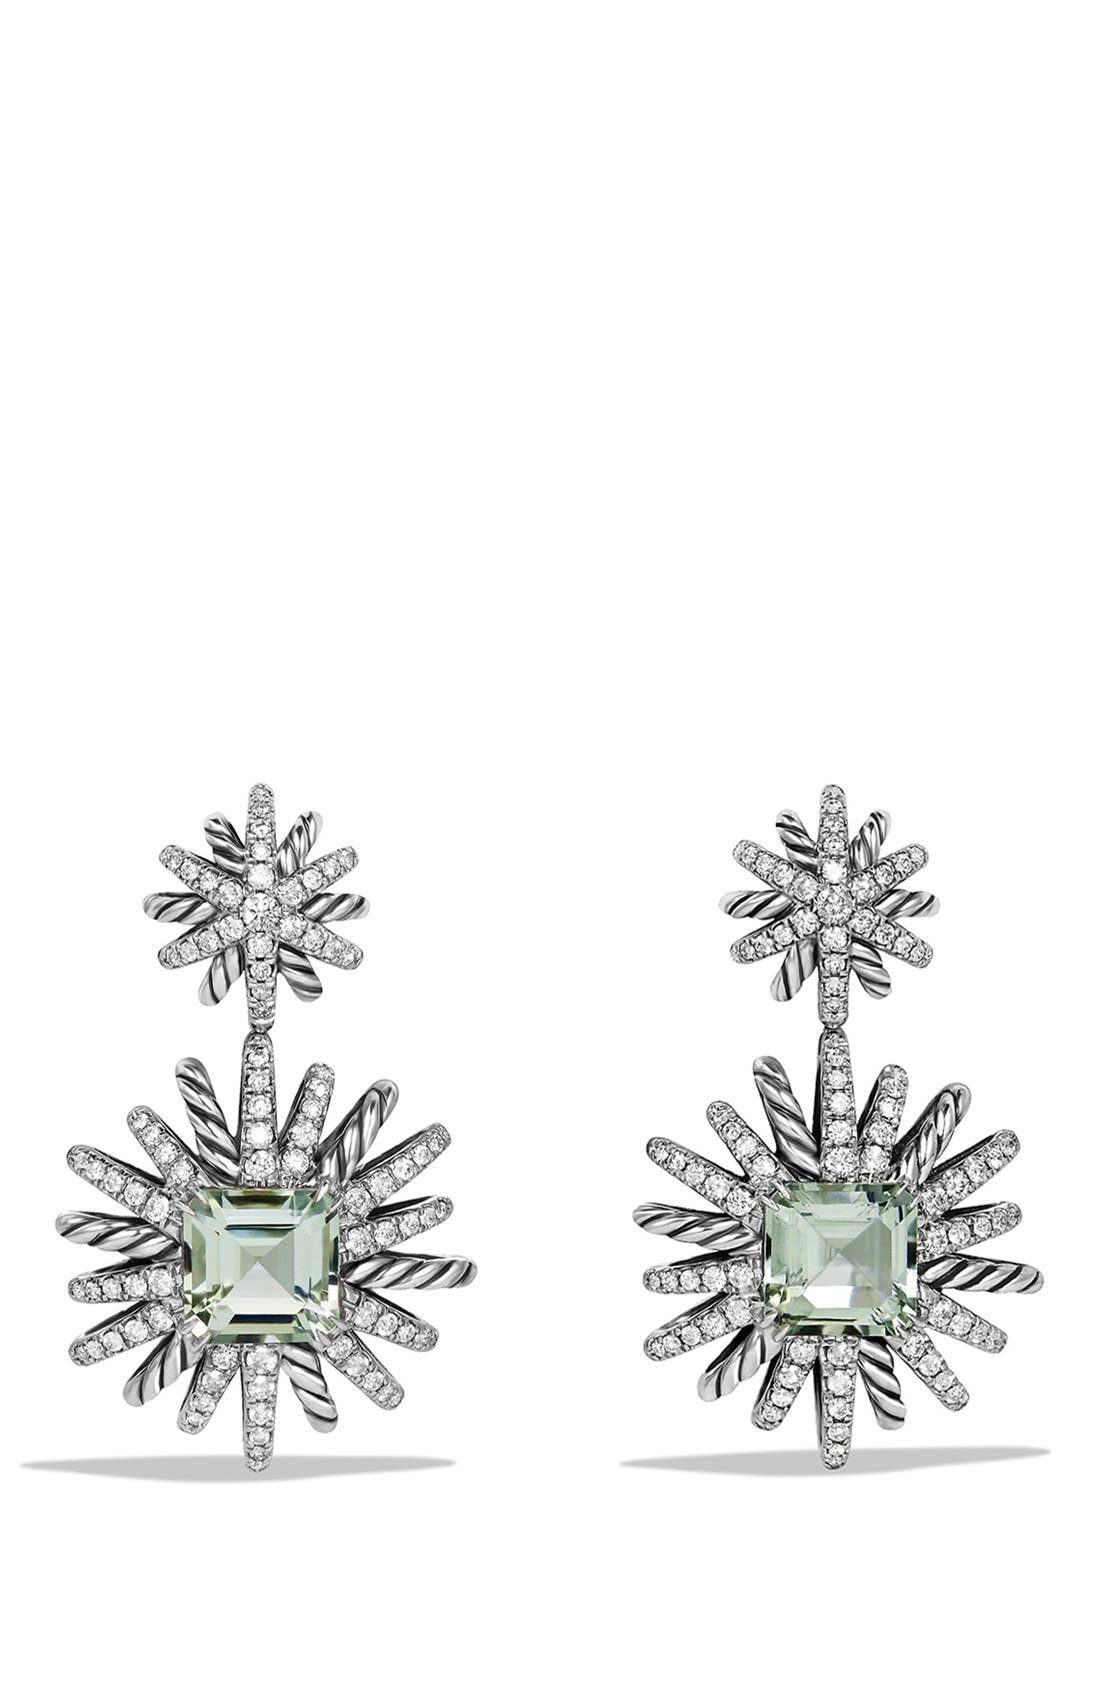 David Yurman 'Starburst' Earrings with Diamonds in Silver